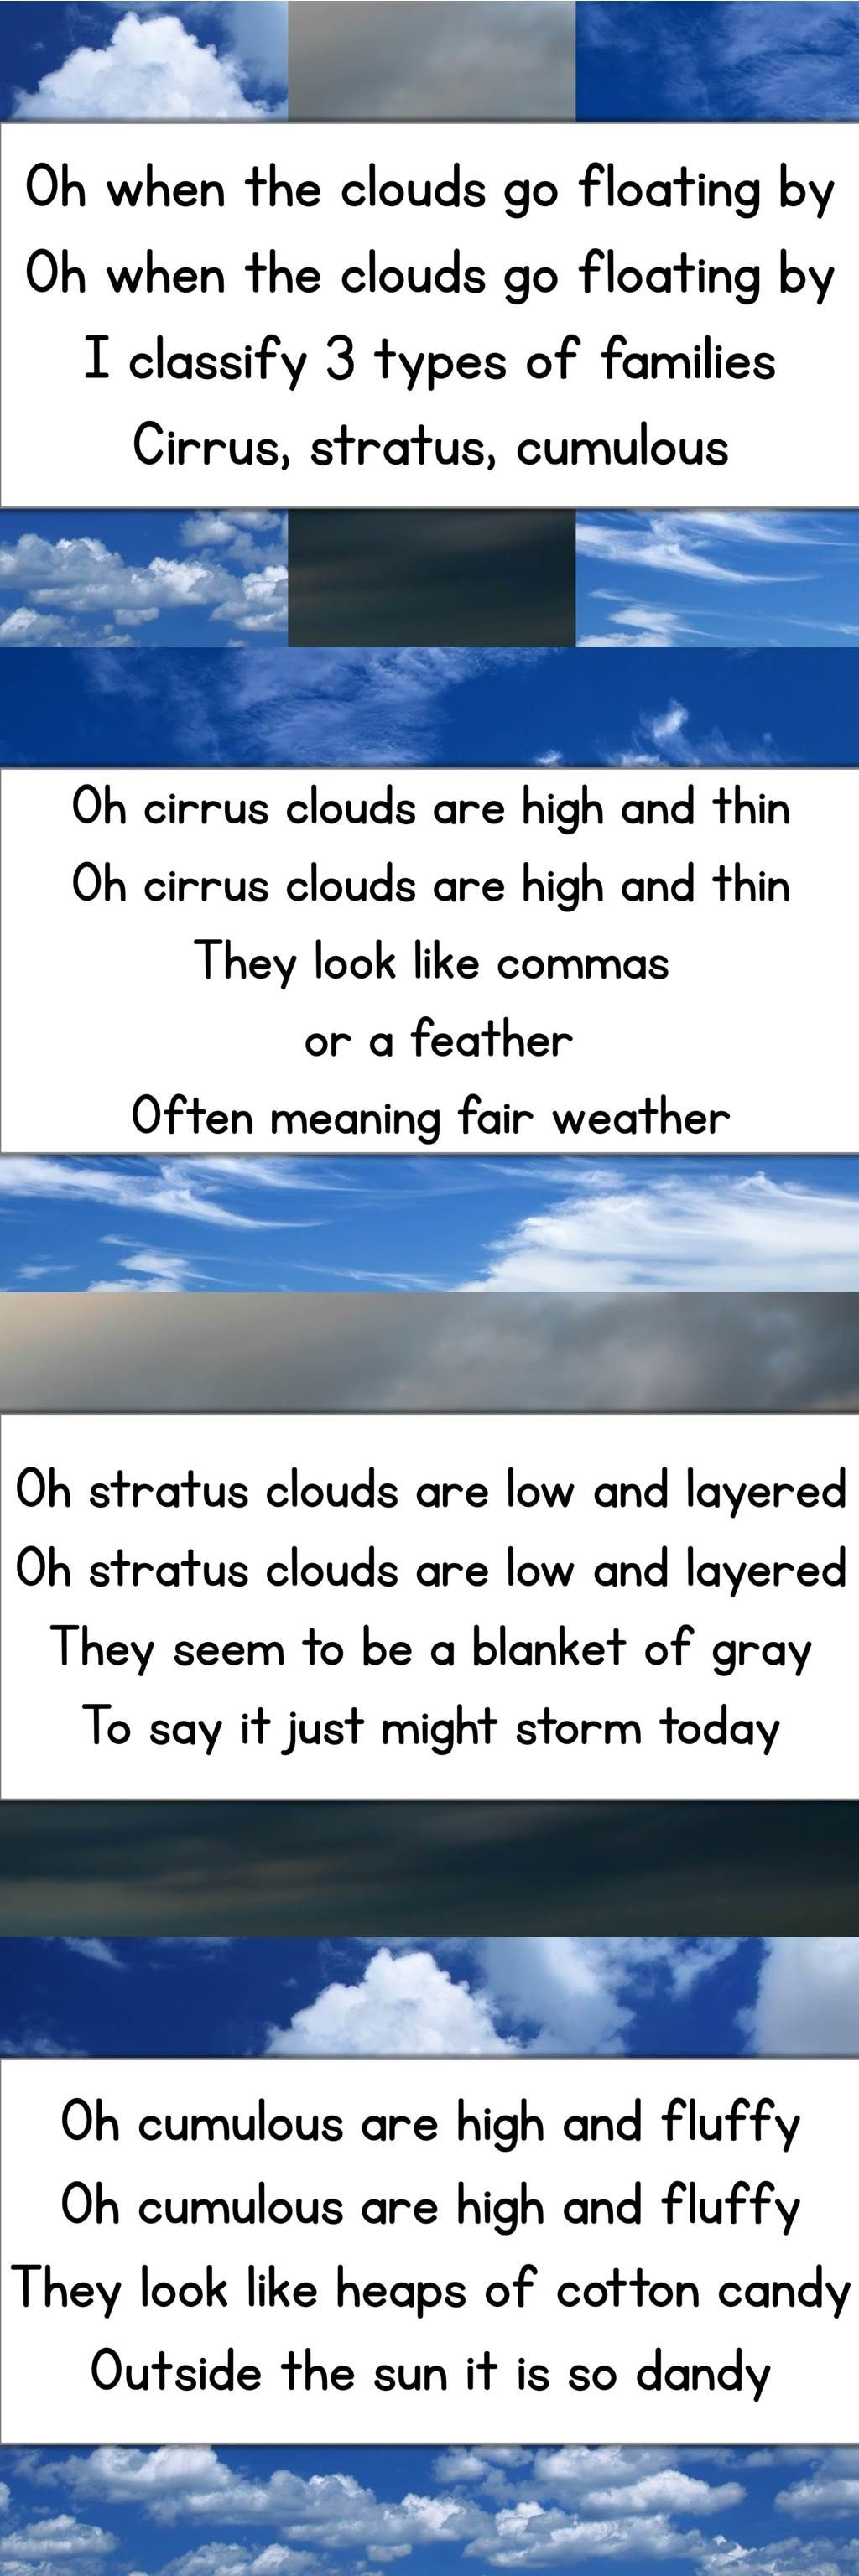 Worksheets Types Of Clouds Worksheet awesome song to teach different types of clouds free cards wk the photos twaddley worksheets here too wi